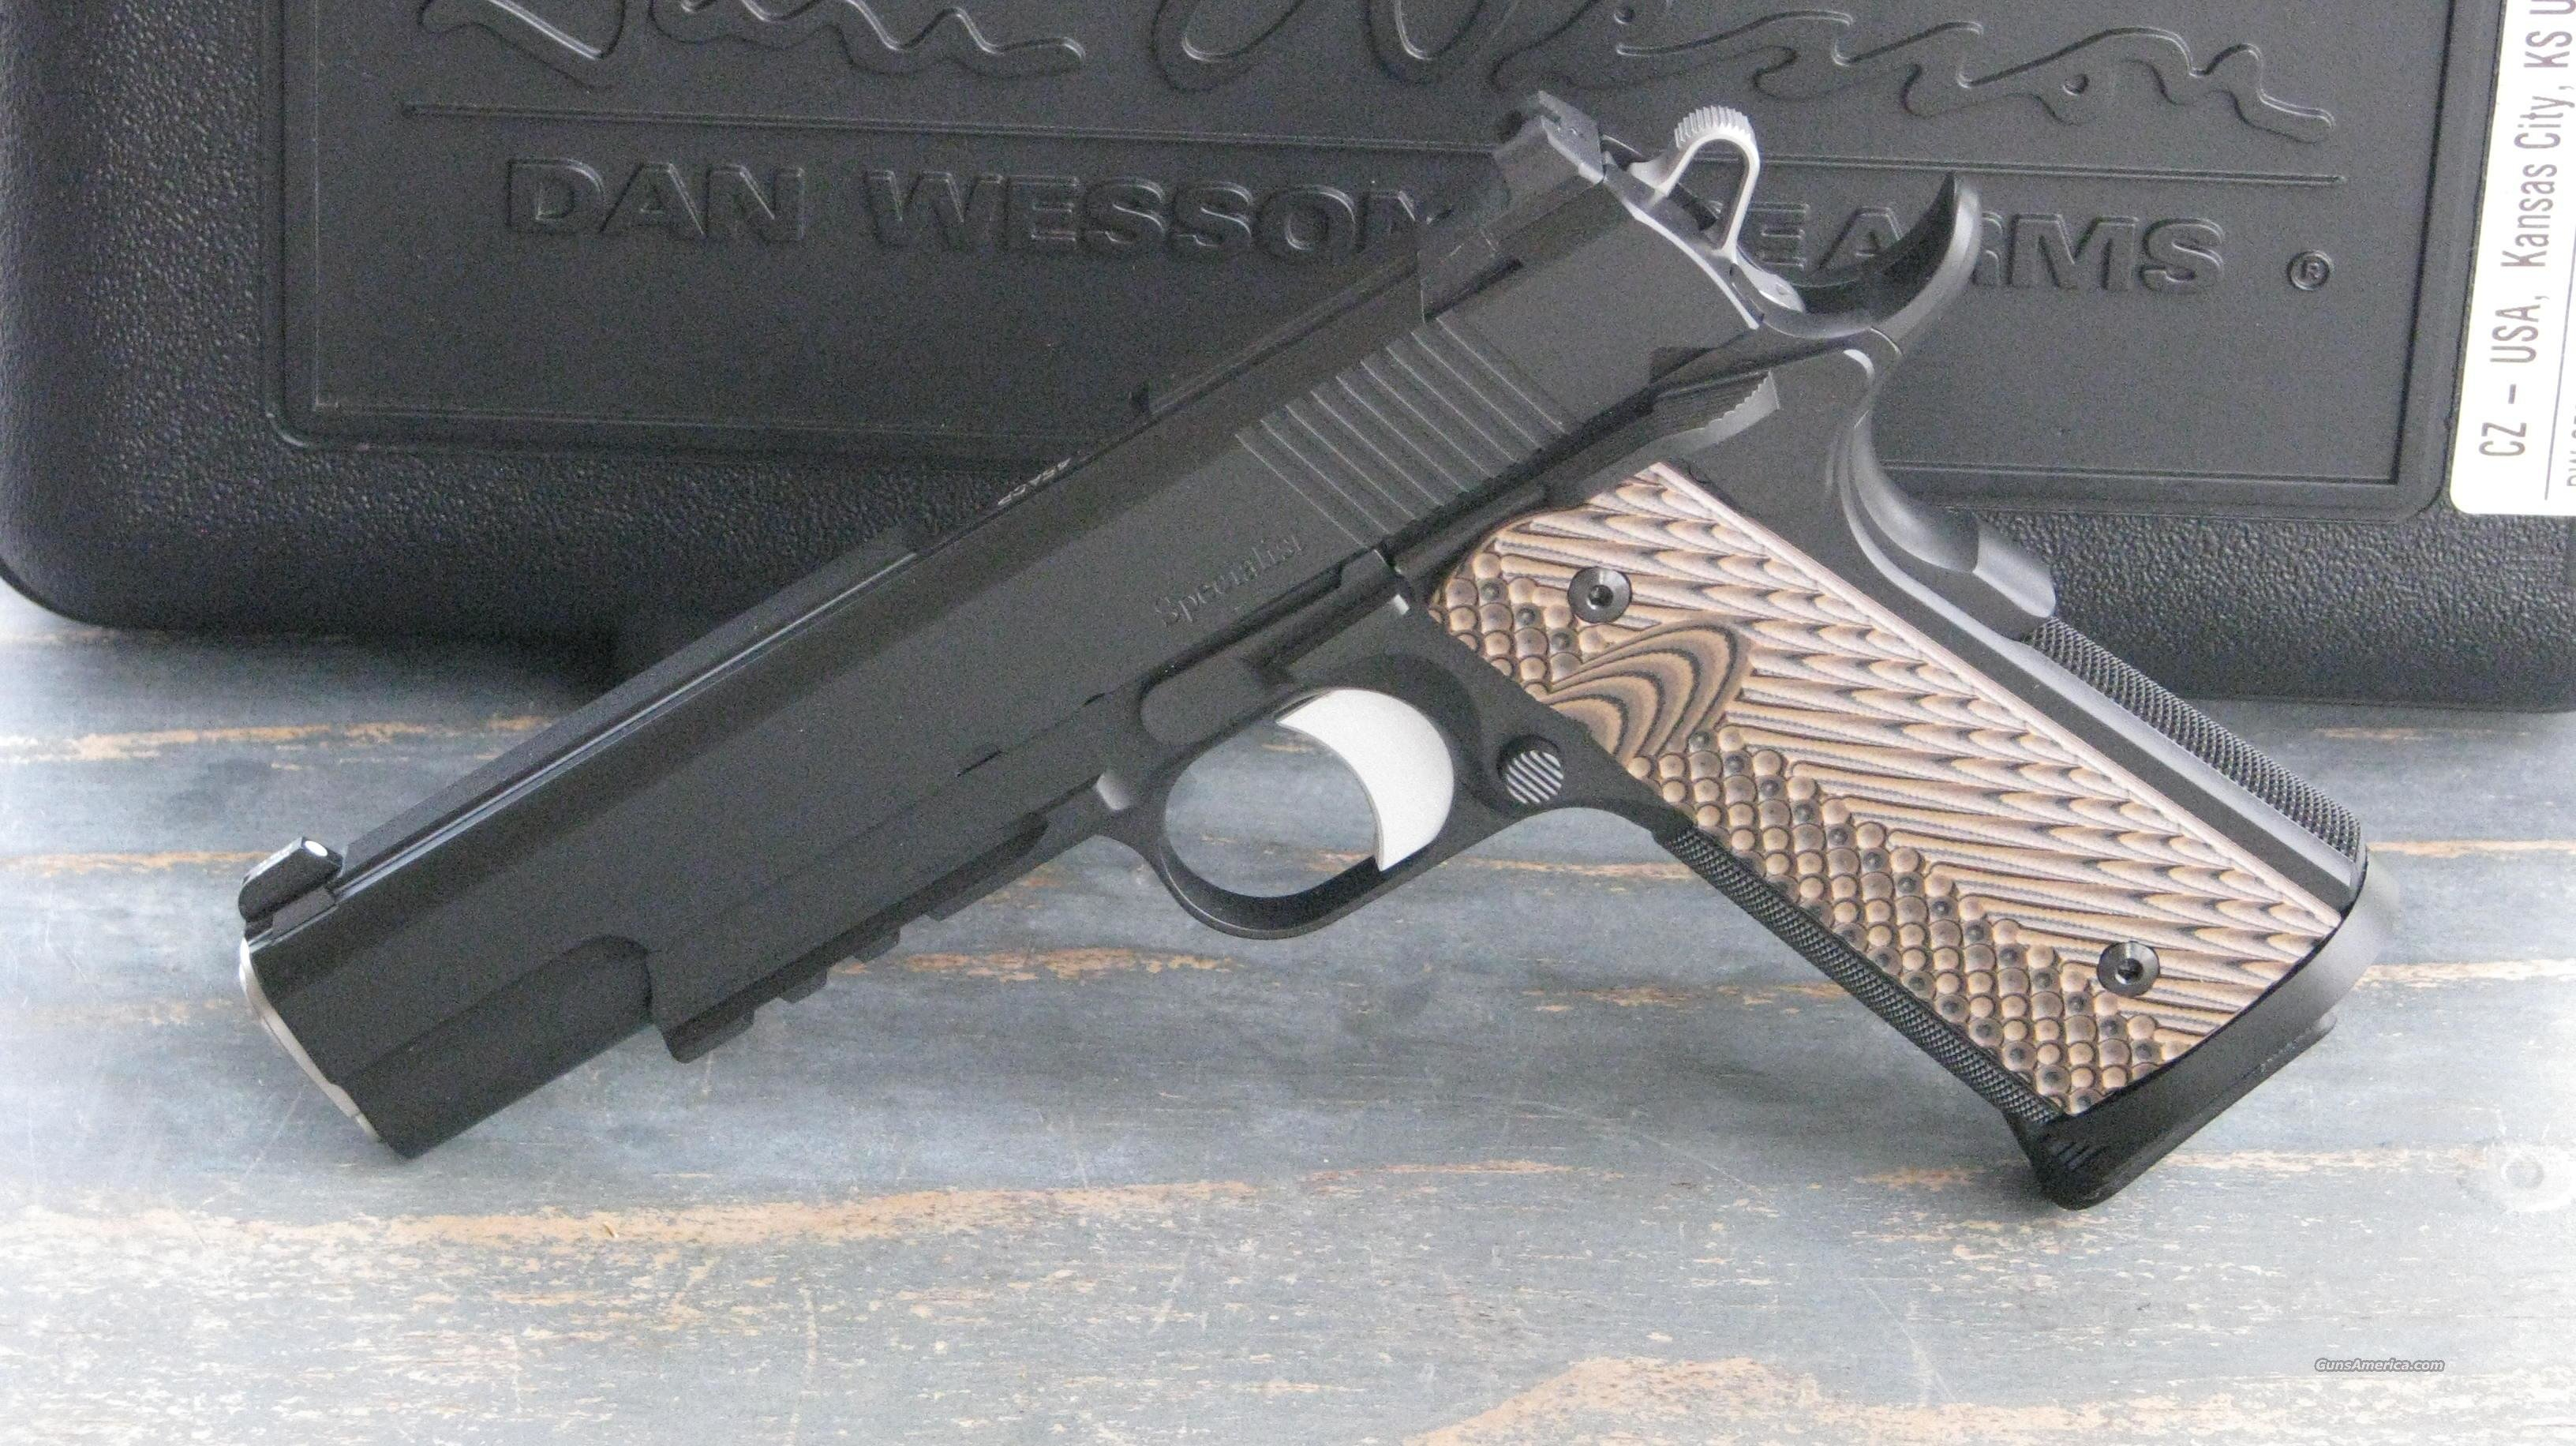 CZ Dan Wesson 1911 Specialist 01992 /EASY PAY $170 Monthly  Guns > Pistols > Dan Wesson Pistols/Revolvers > 1911 Style